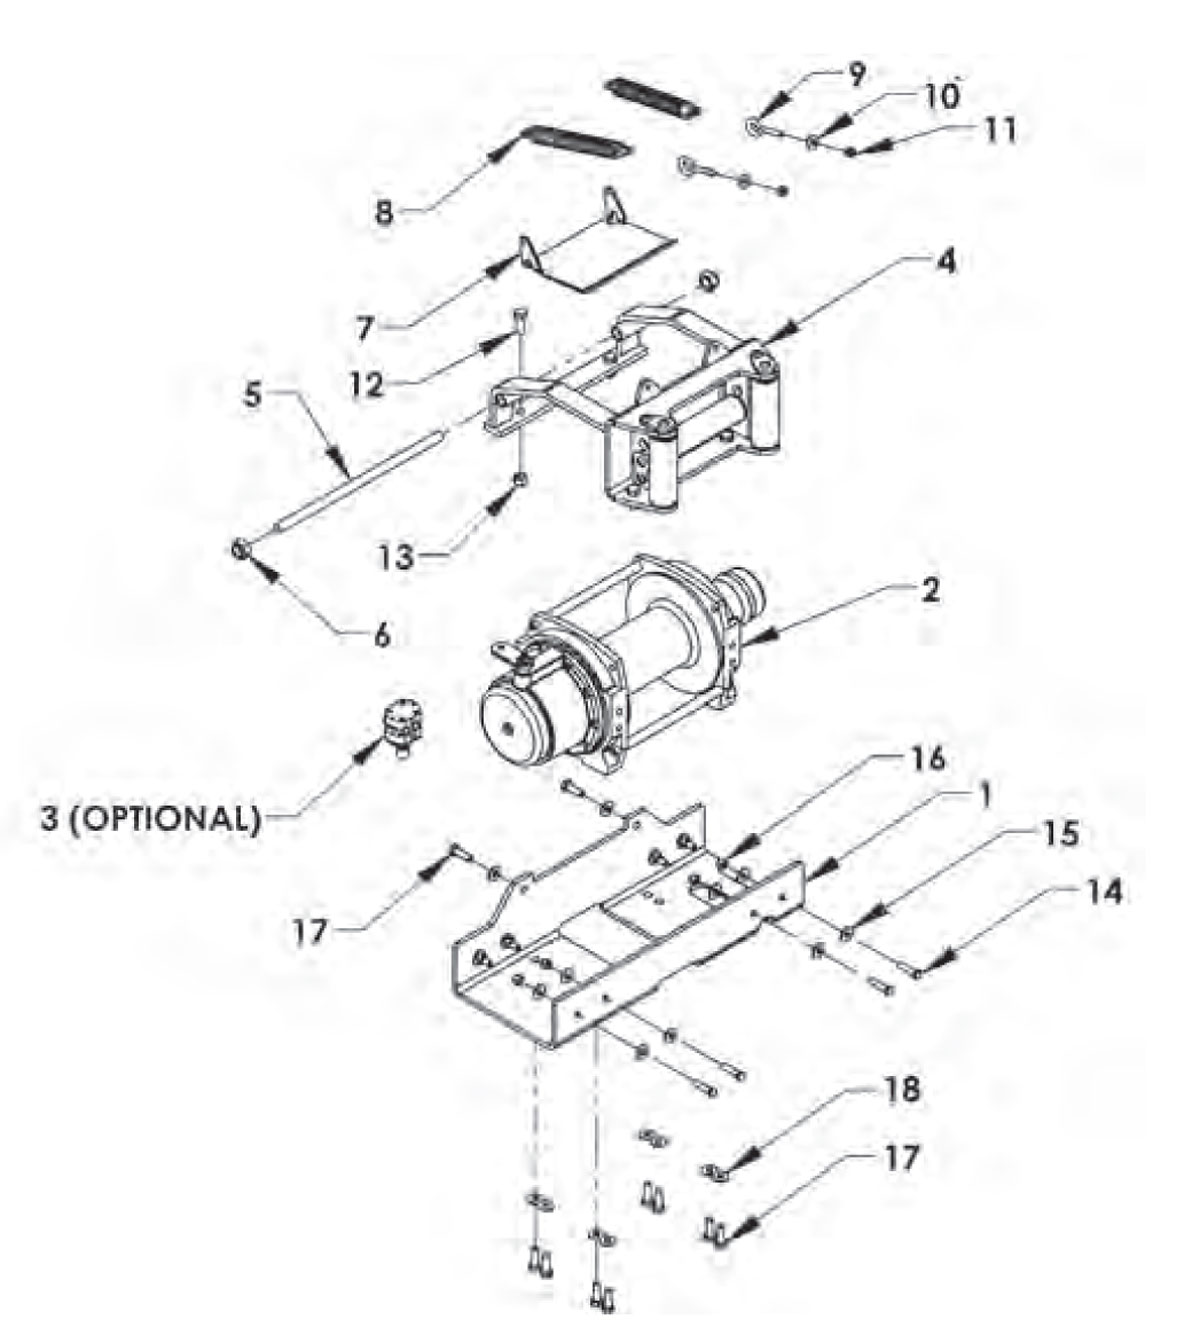 Ironman Winch Wiring Diagram 28 Images Dolgular Com Chevron 12 Series Lcg Gen Ii Carriers 2009 Warn Group